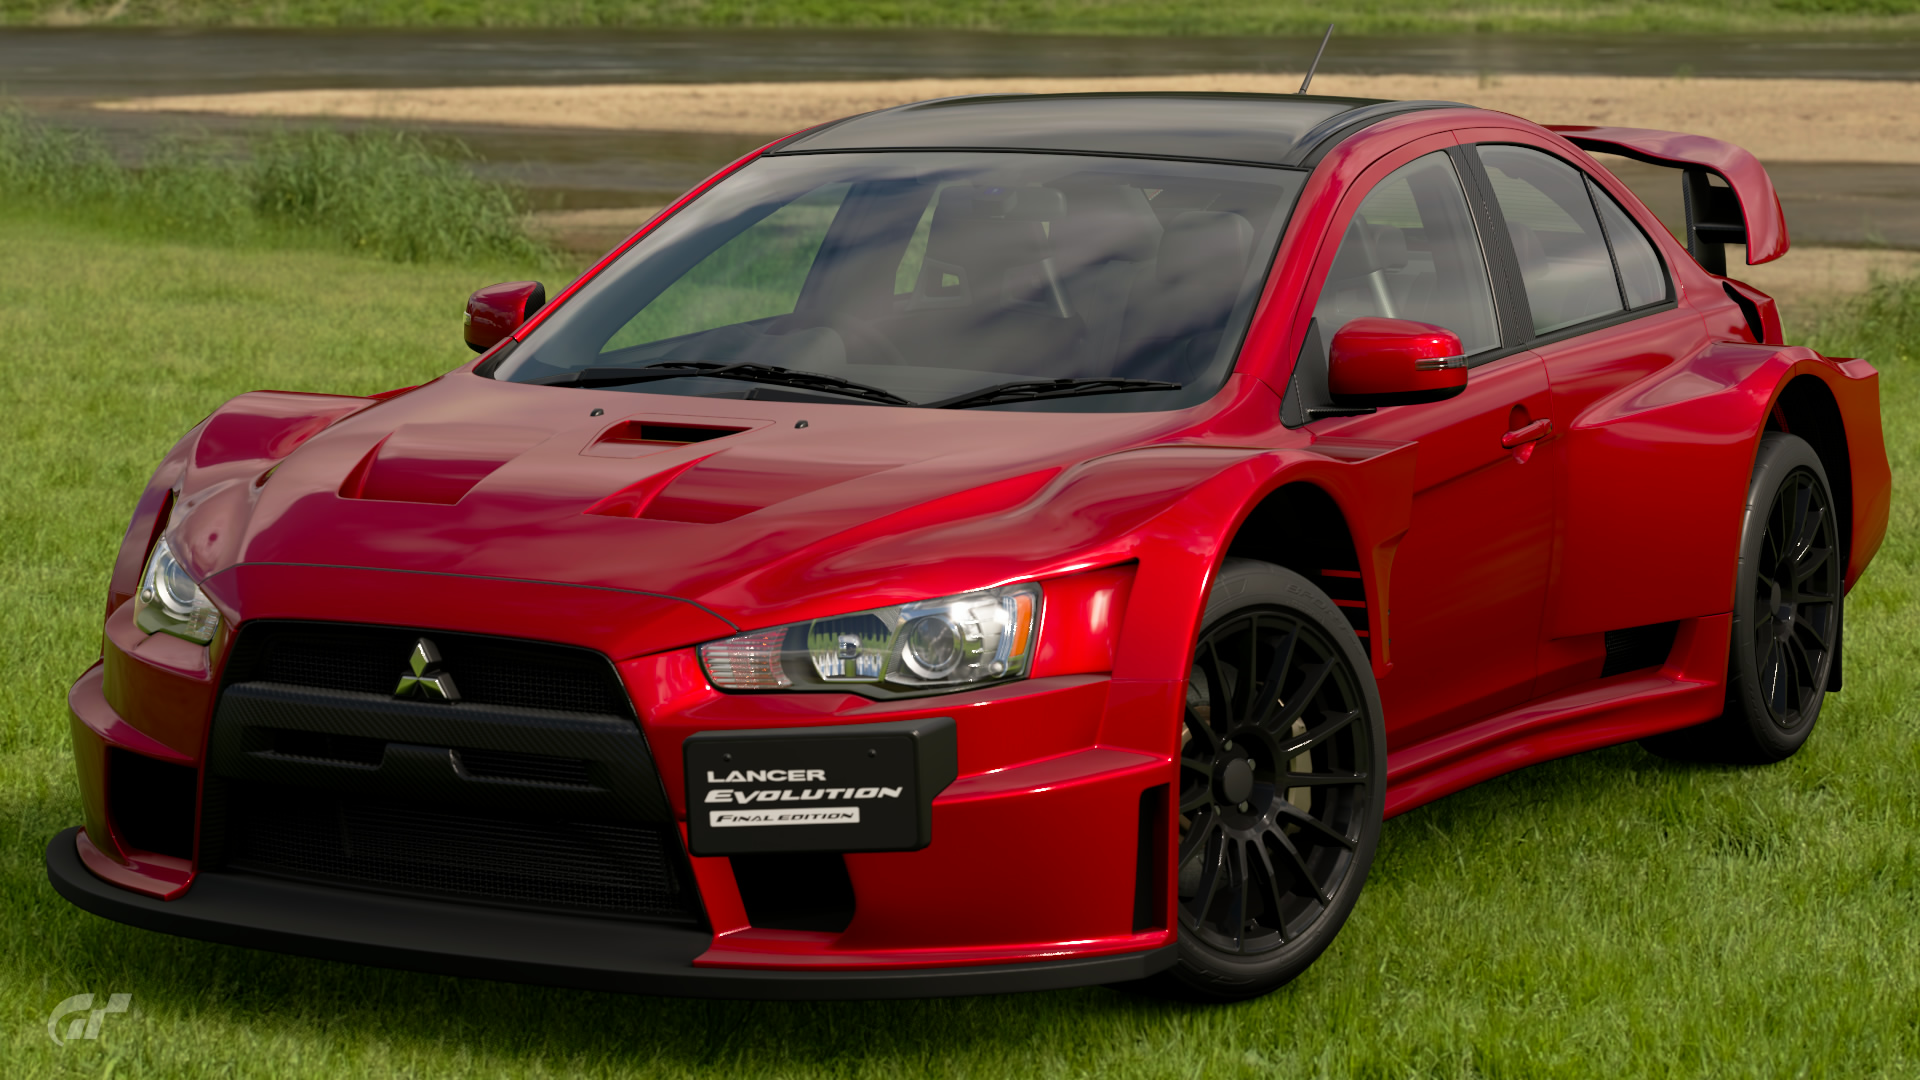 Mitsubishi Lancer Evolution Final Edition Gr.B Road Car